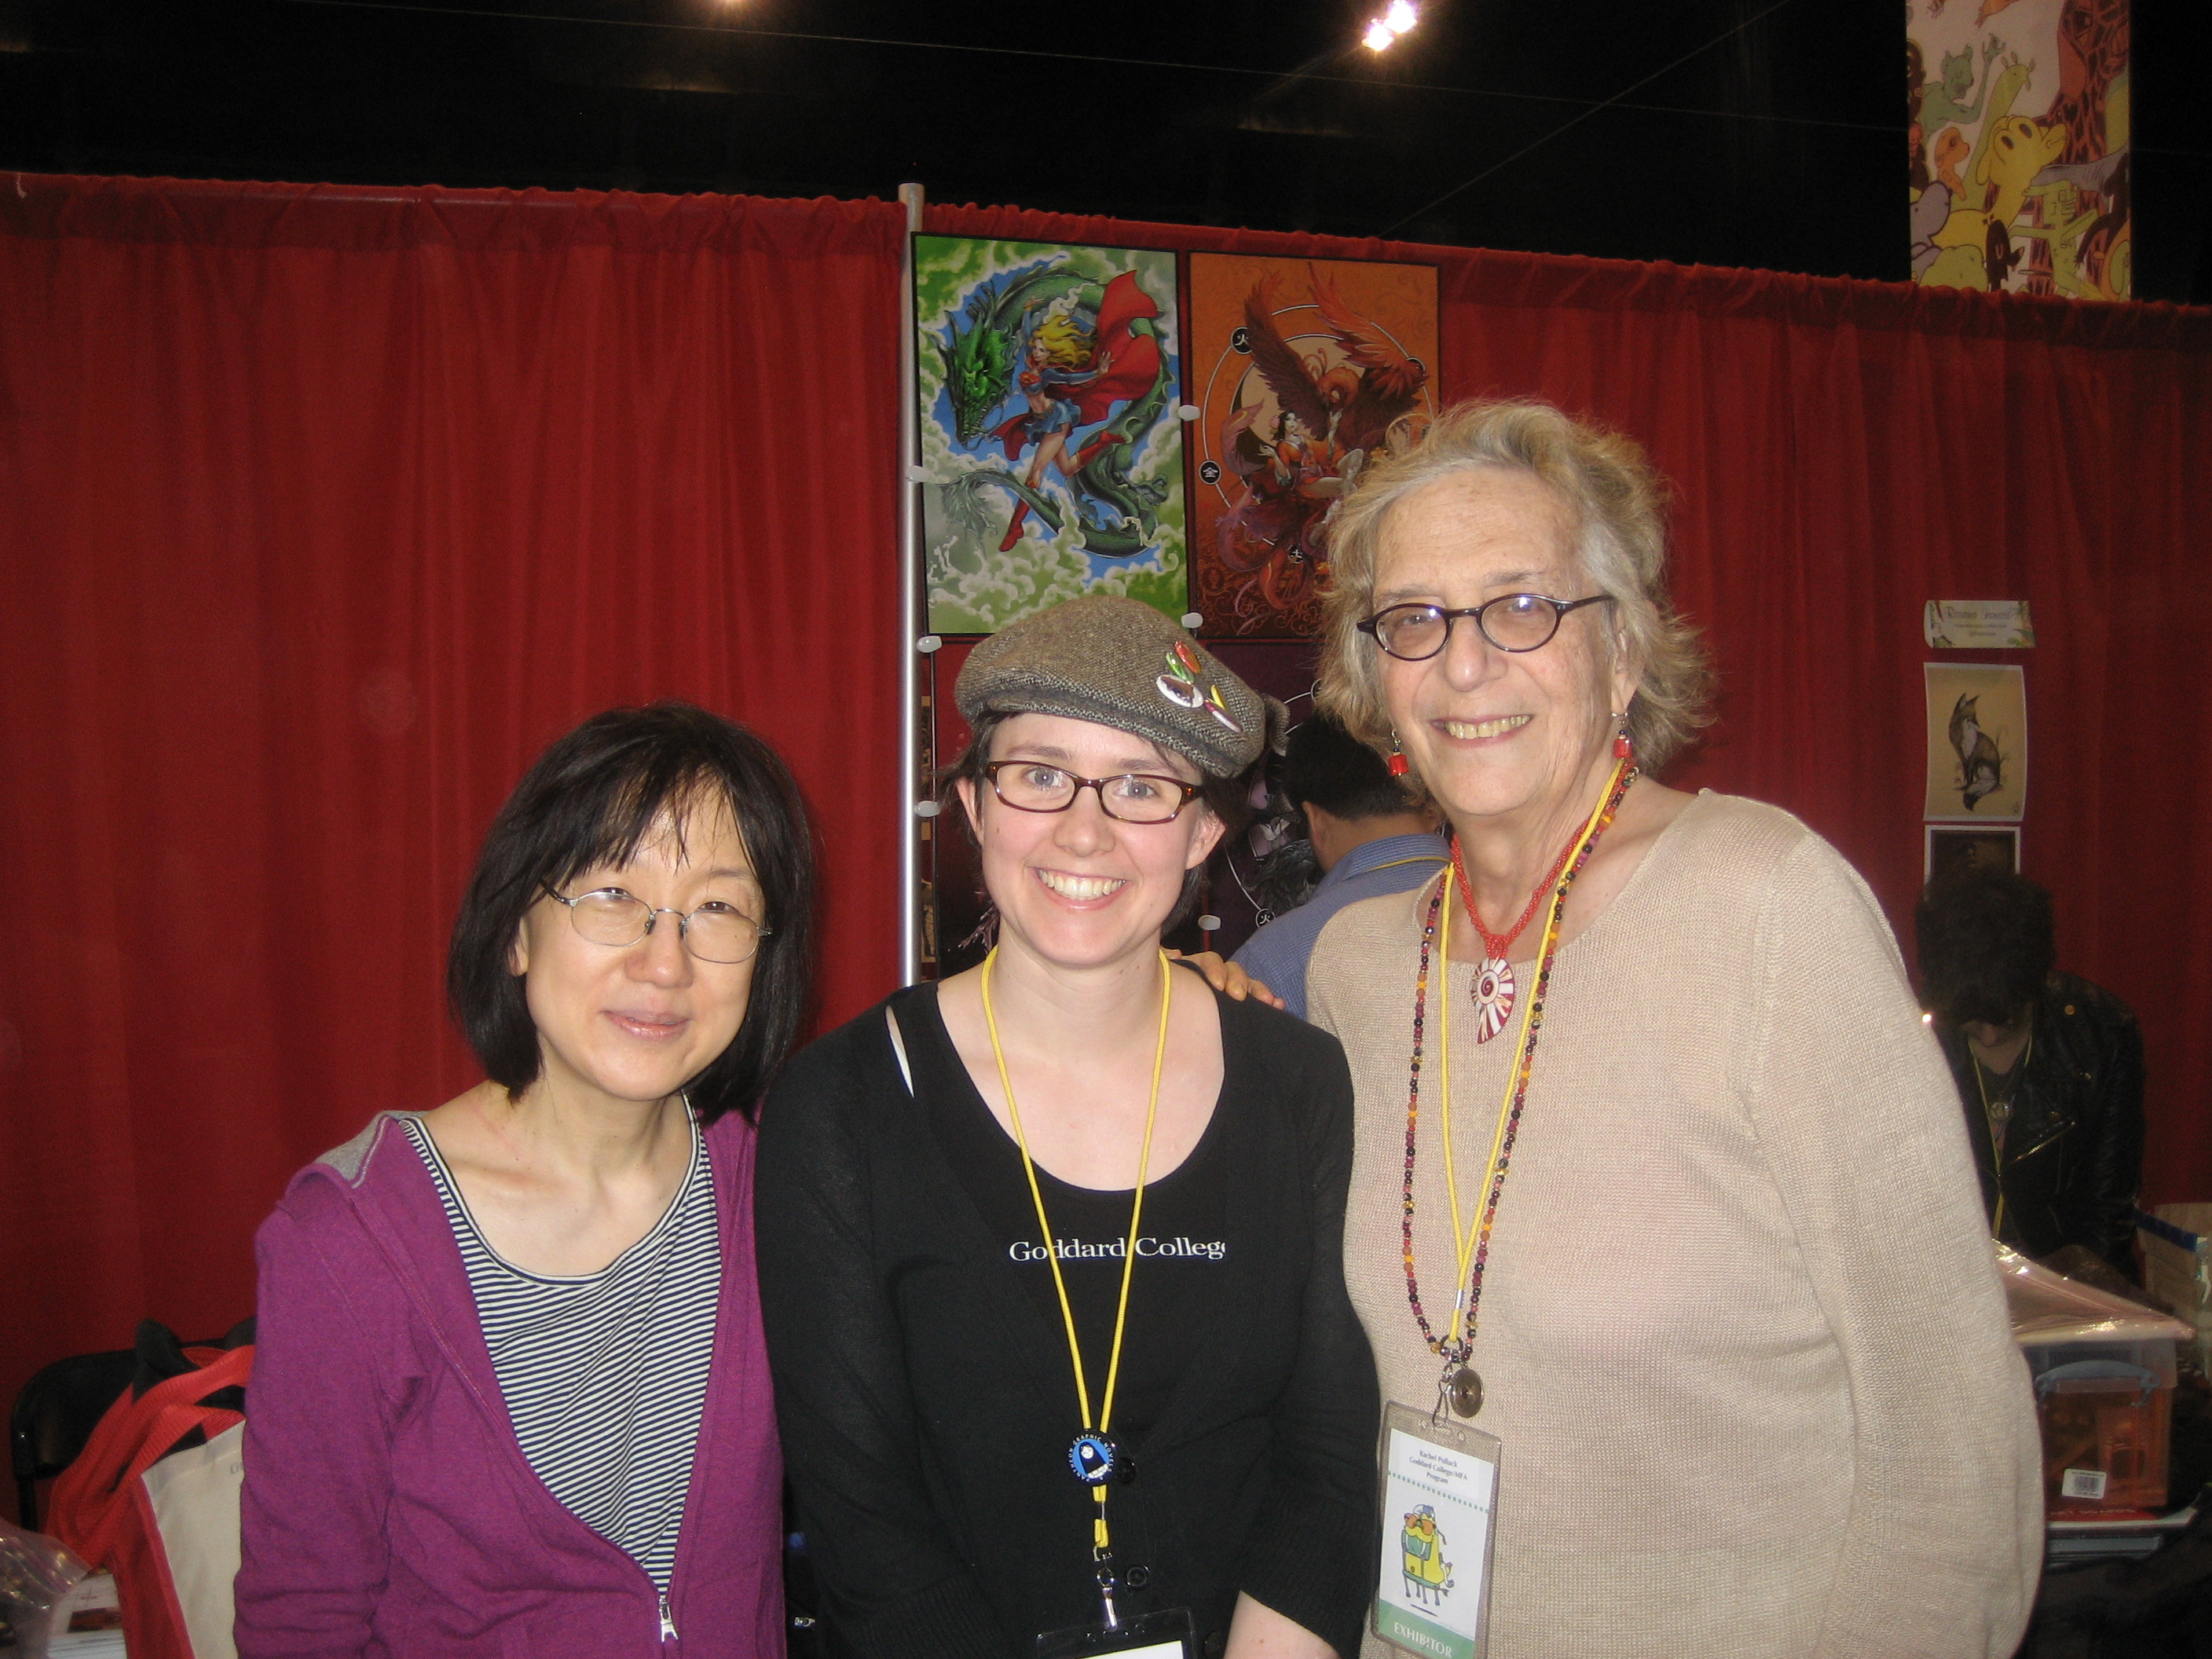 The Graphic Novel with Susan Kim and Rachel Pollack